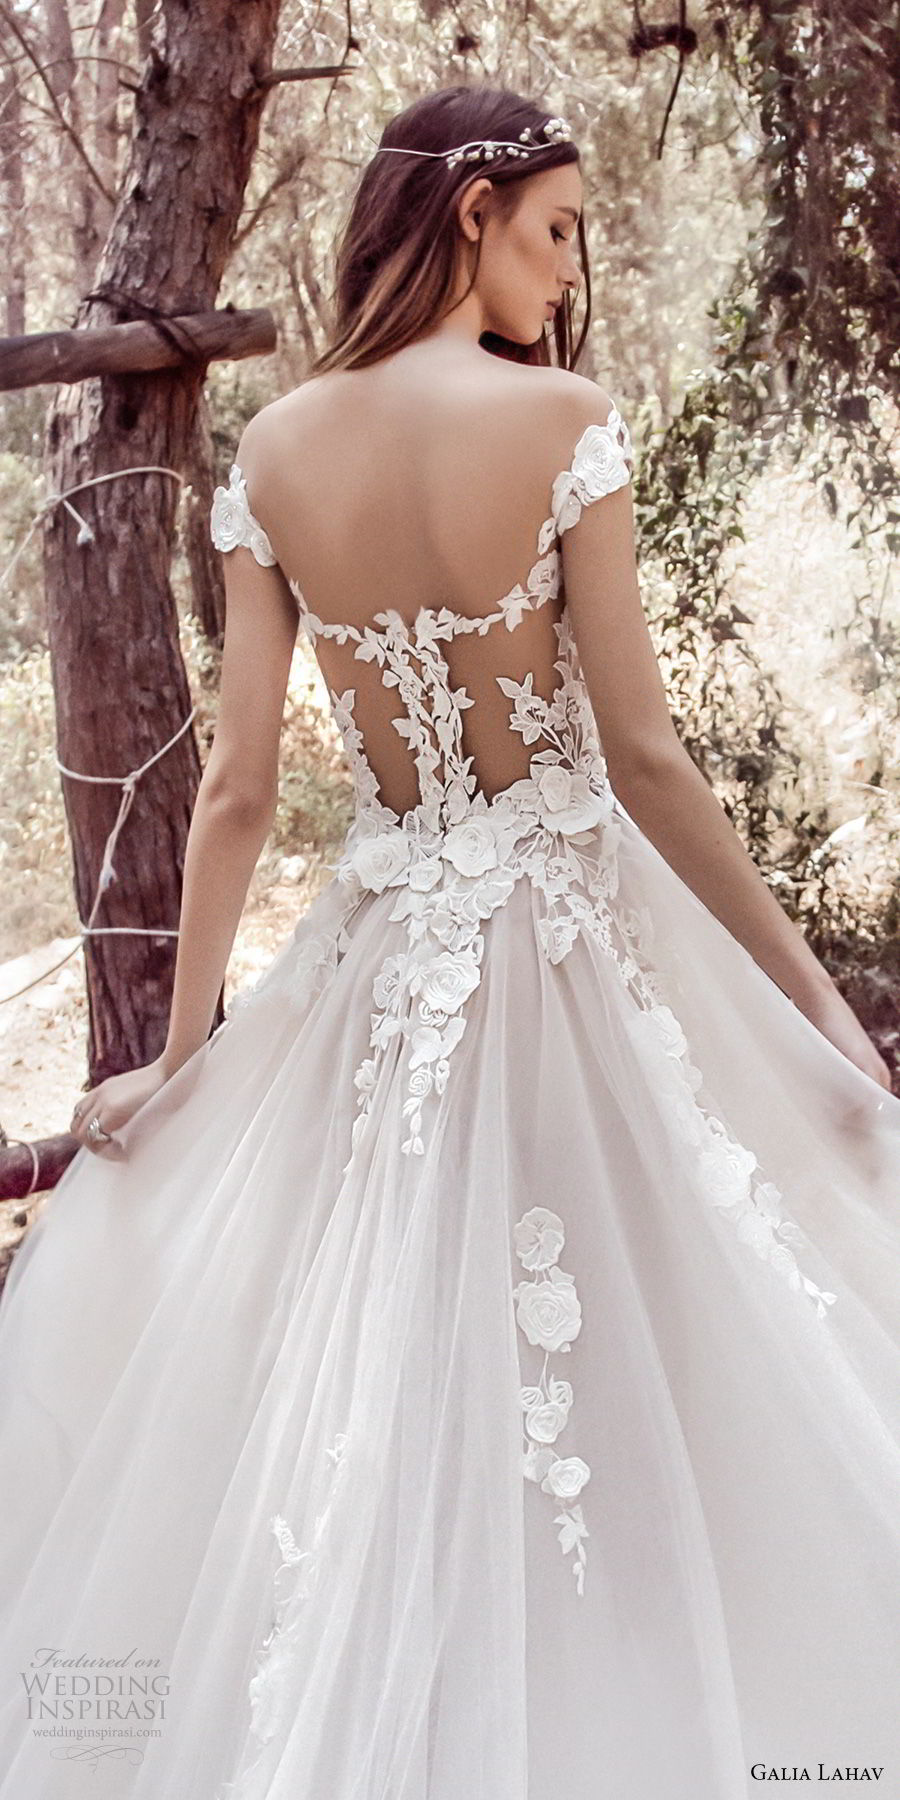 galia lahav gala 4 2018 bridal cap sleeves sweetheart neckline heavily embellished bodice tulle skirt romantic princess a line wedding dress mid lace back royal train (902) zbv